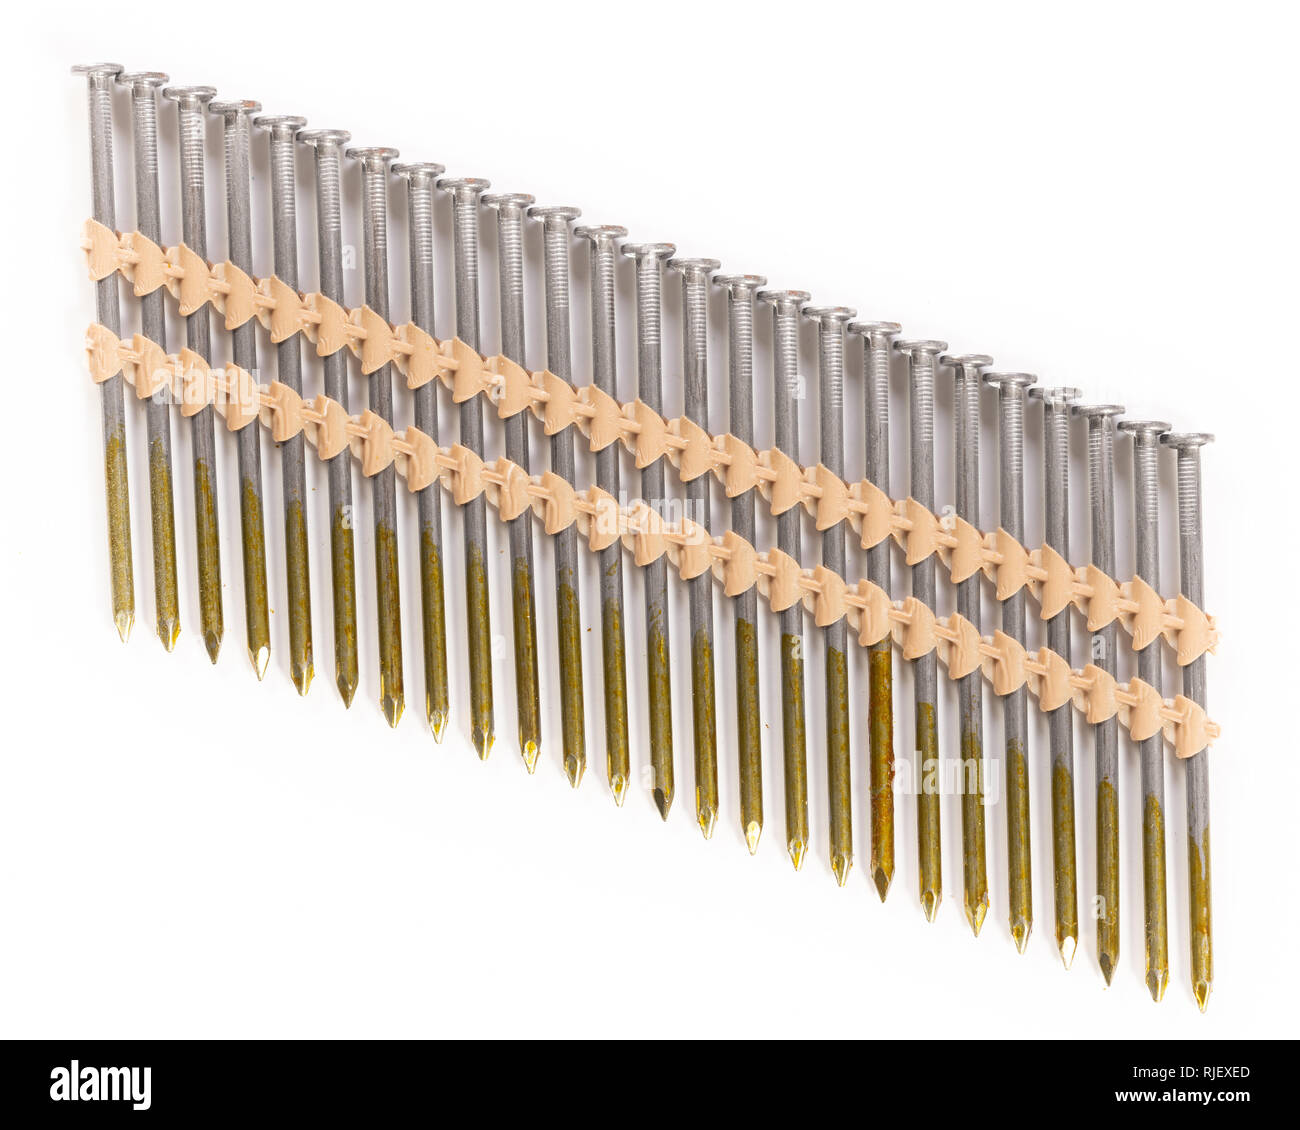 Nail gun nails used in a framing nail gun isolated on a white background. - Stock Image